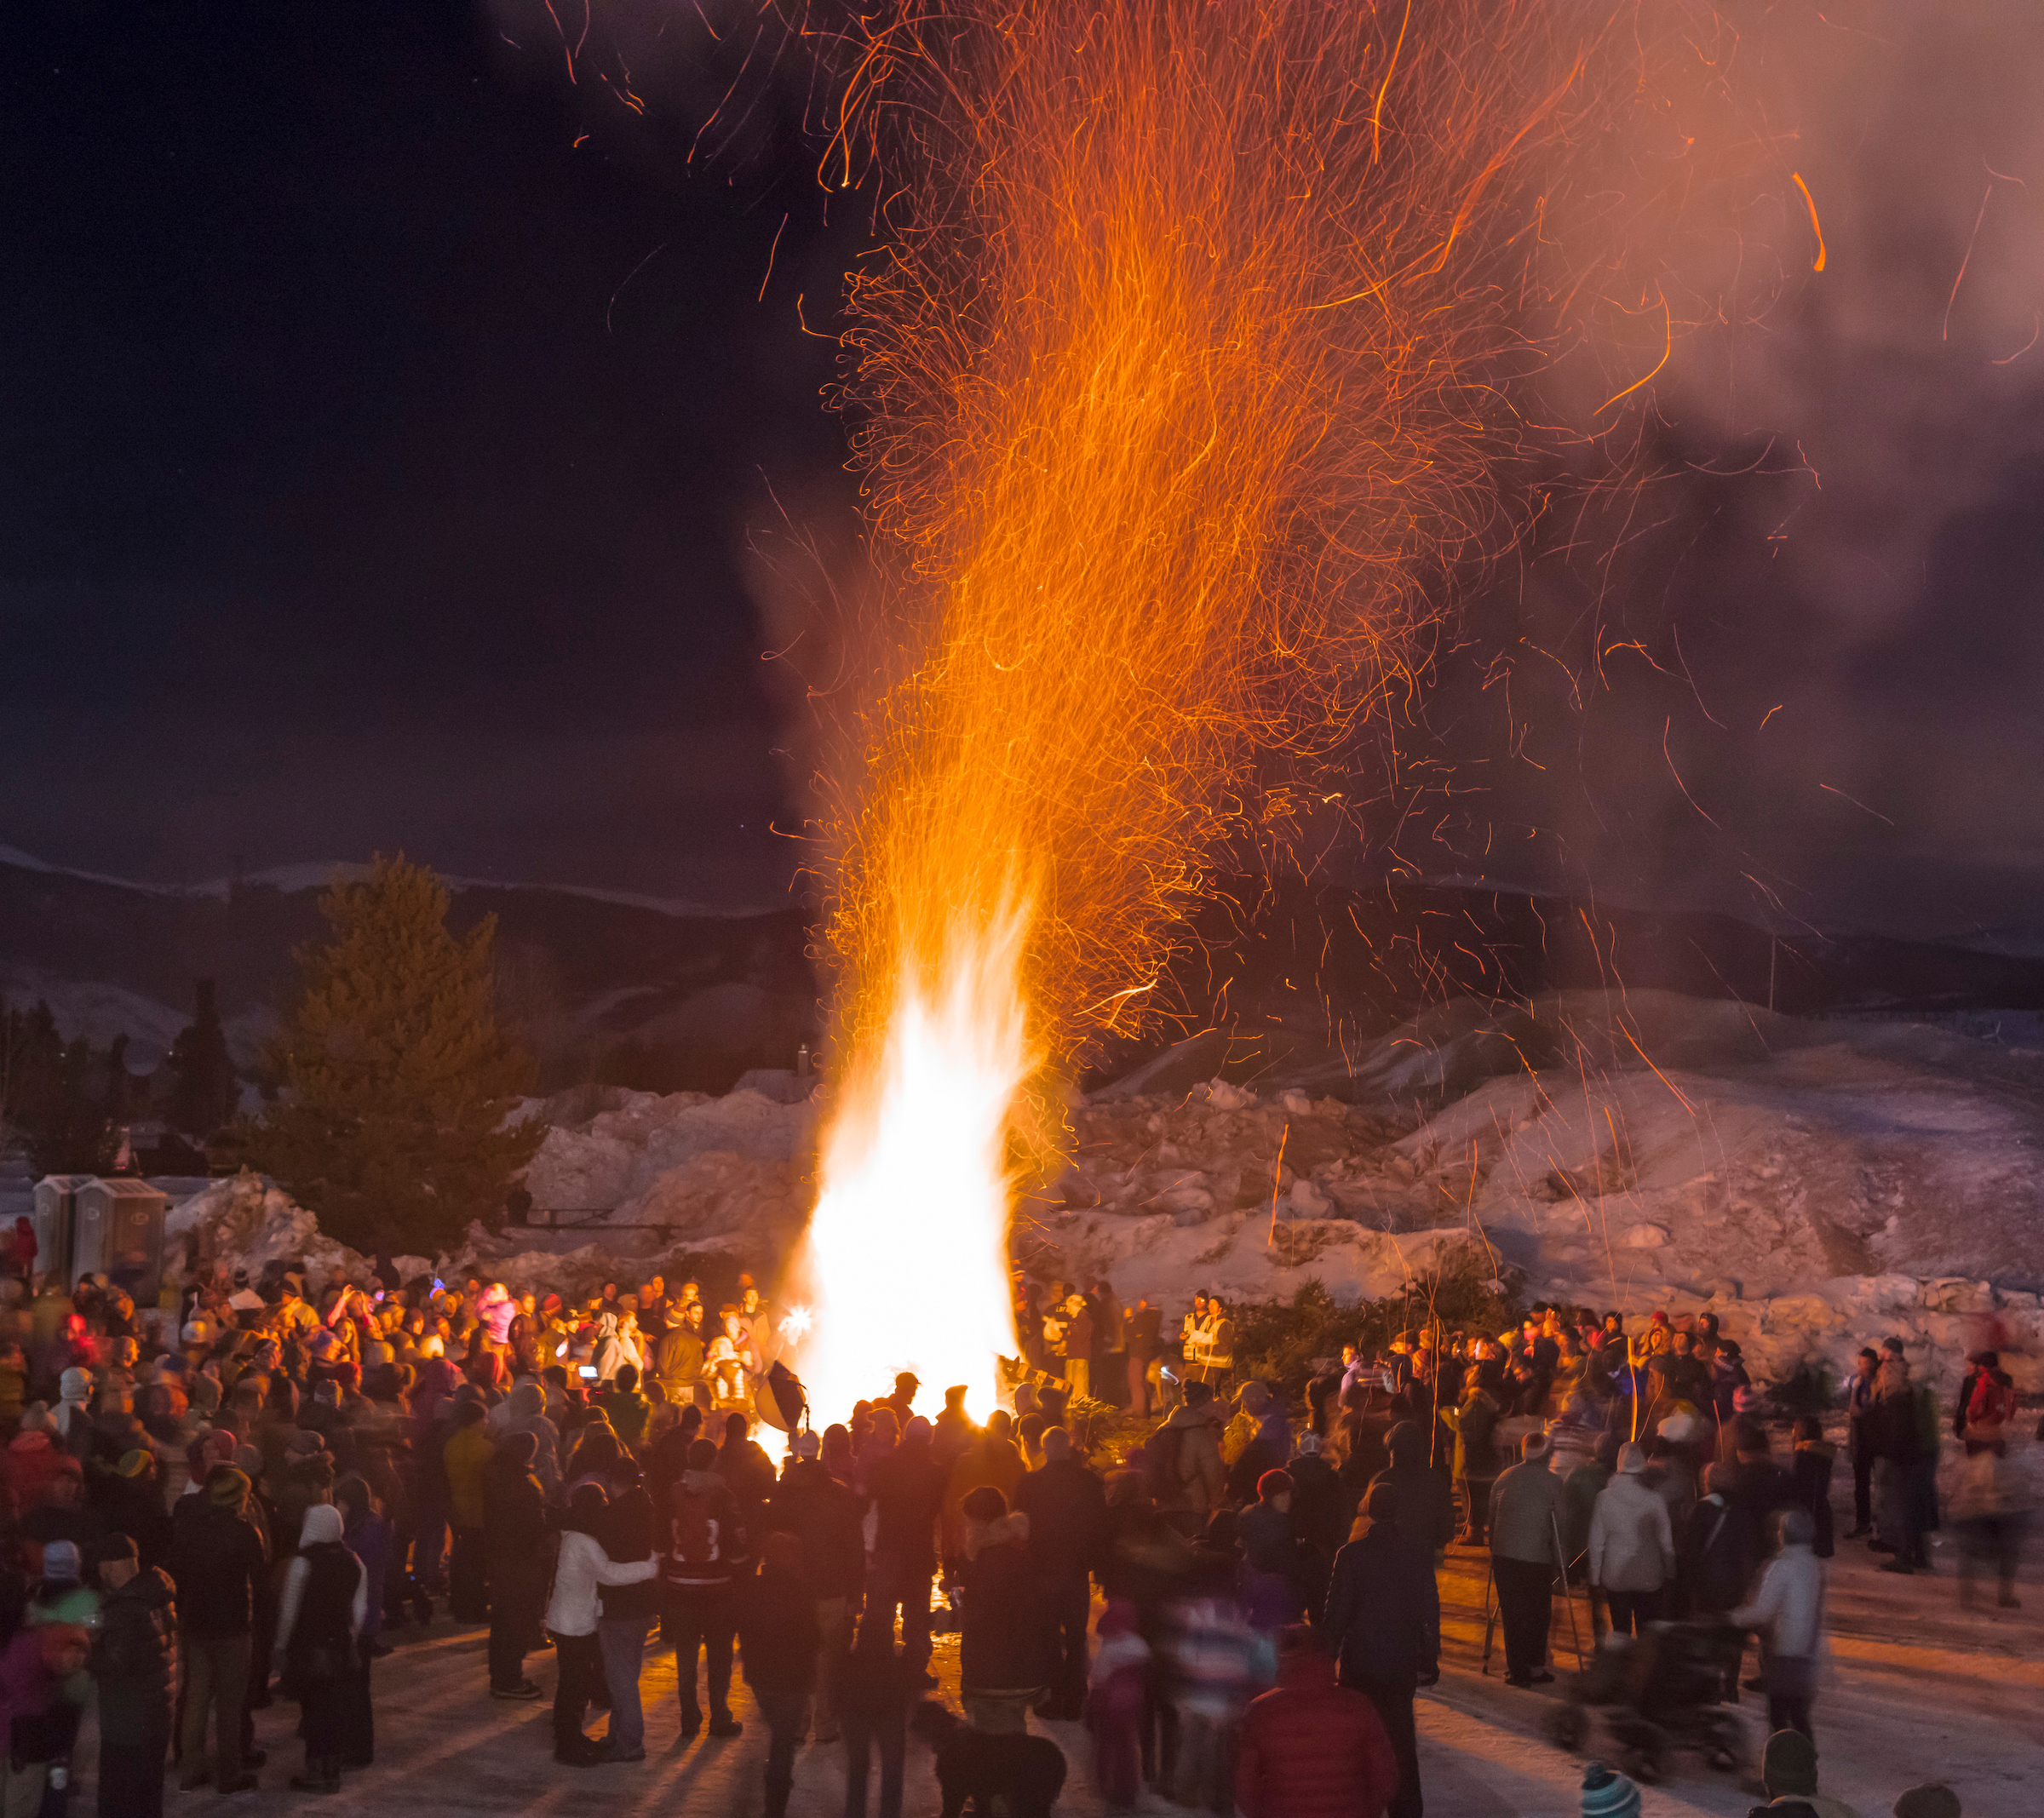 Frisco Spontaneous Combustion Celebration, Frisco, Colorado